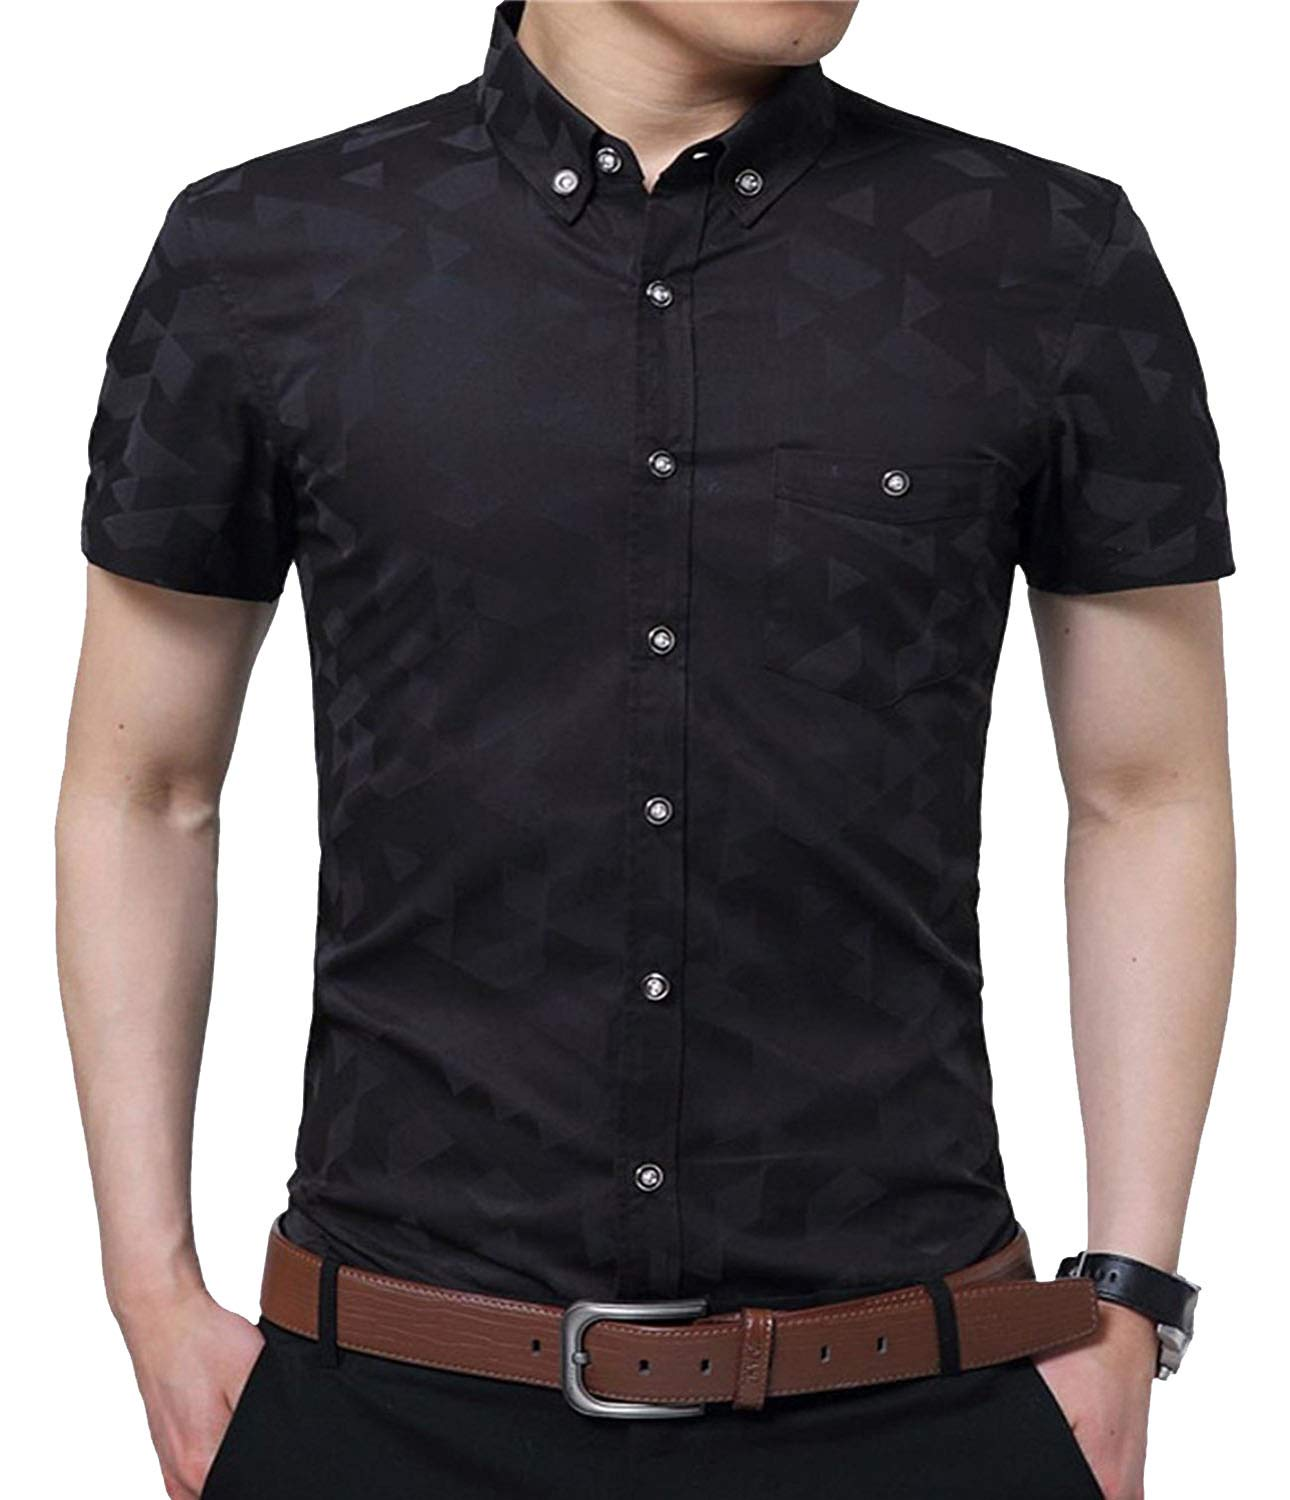 YTD Men's Business Casual Short Sleeves Dress Shirts (Large, Black) by YTD